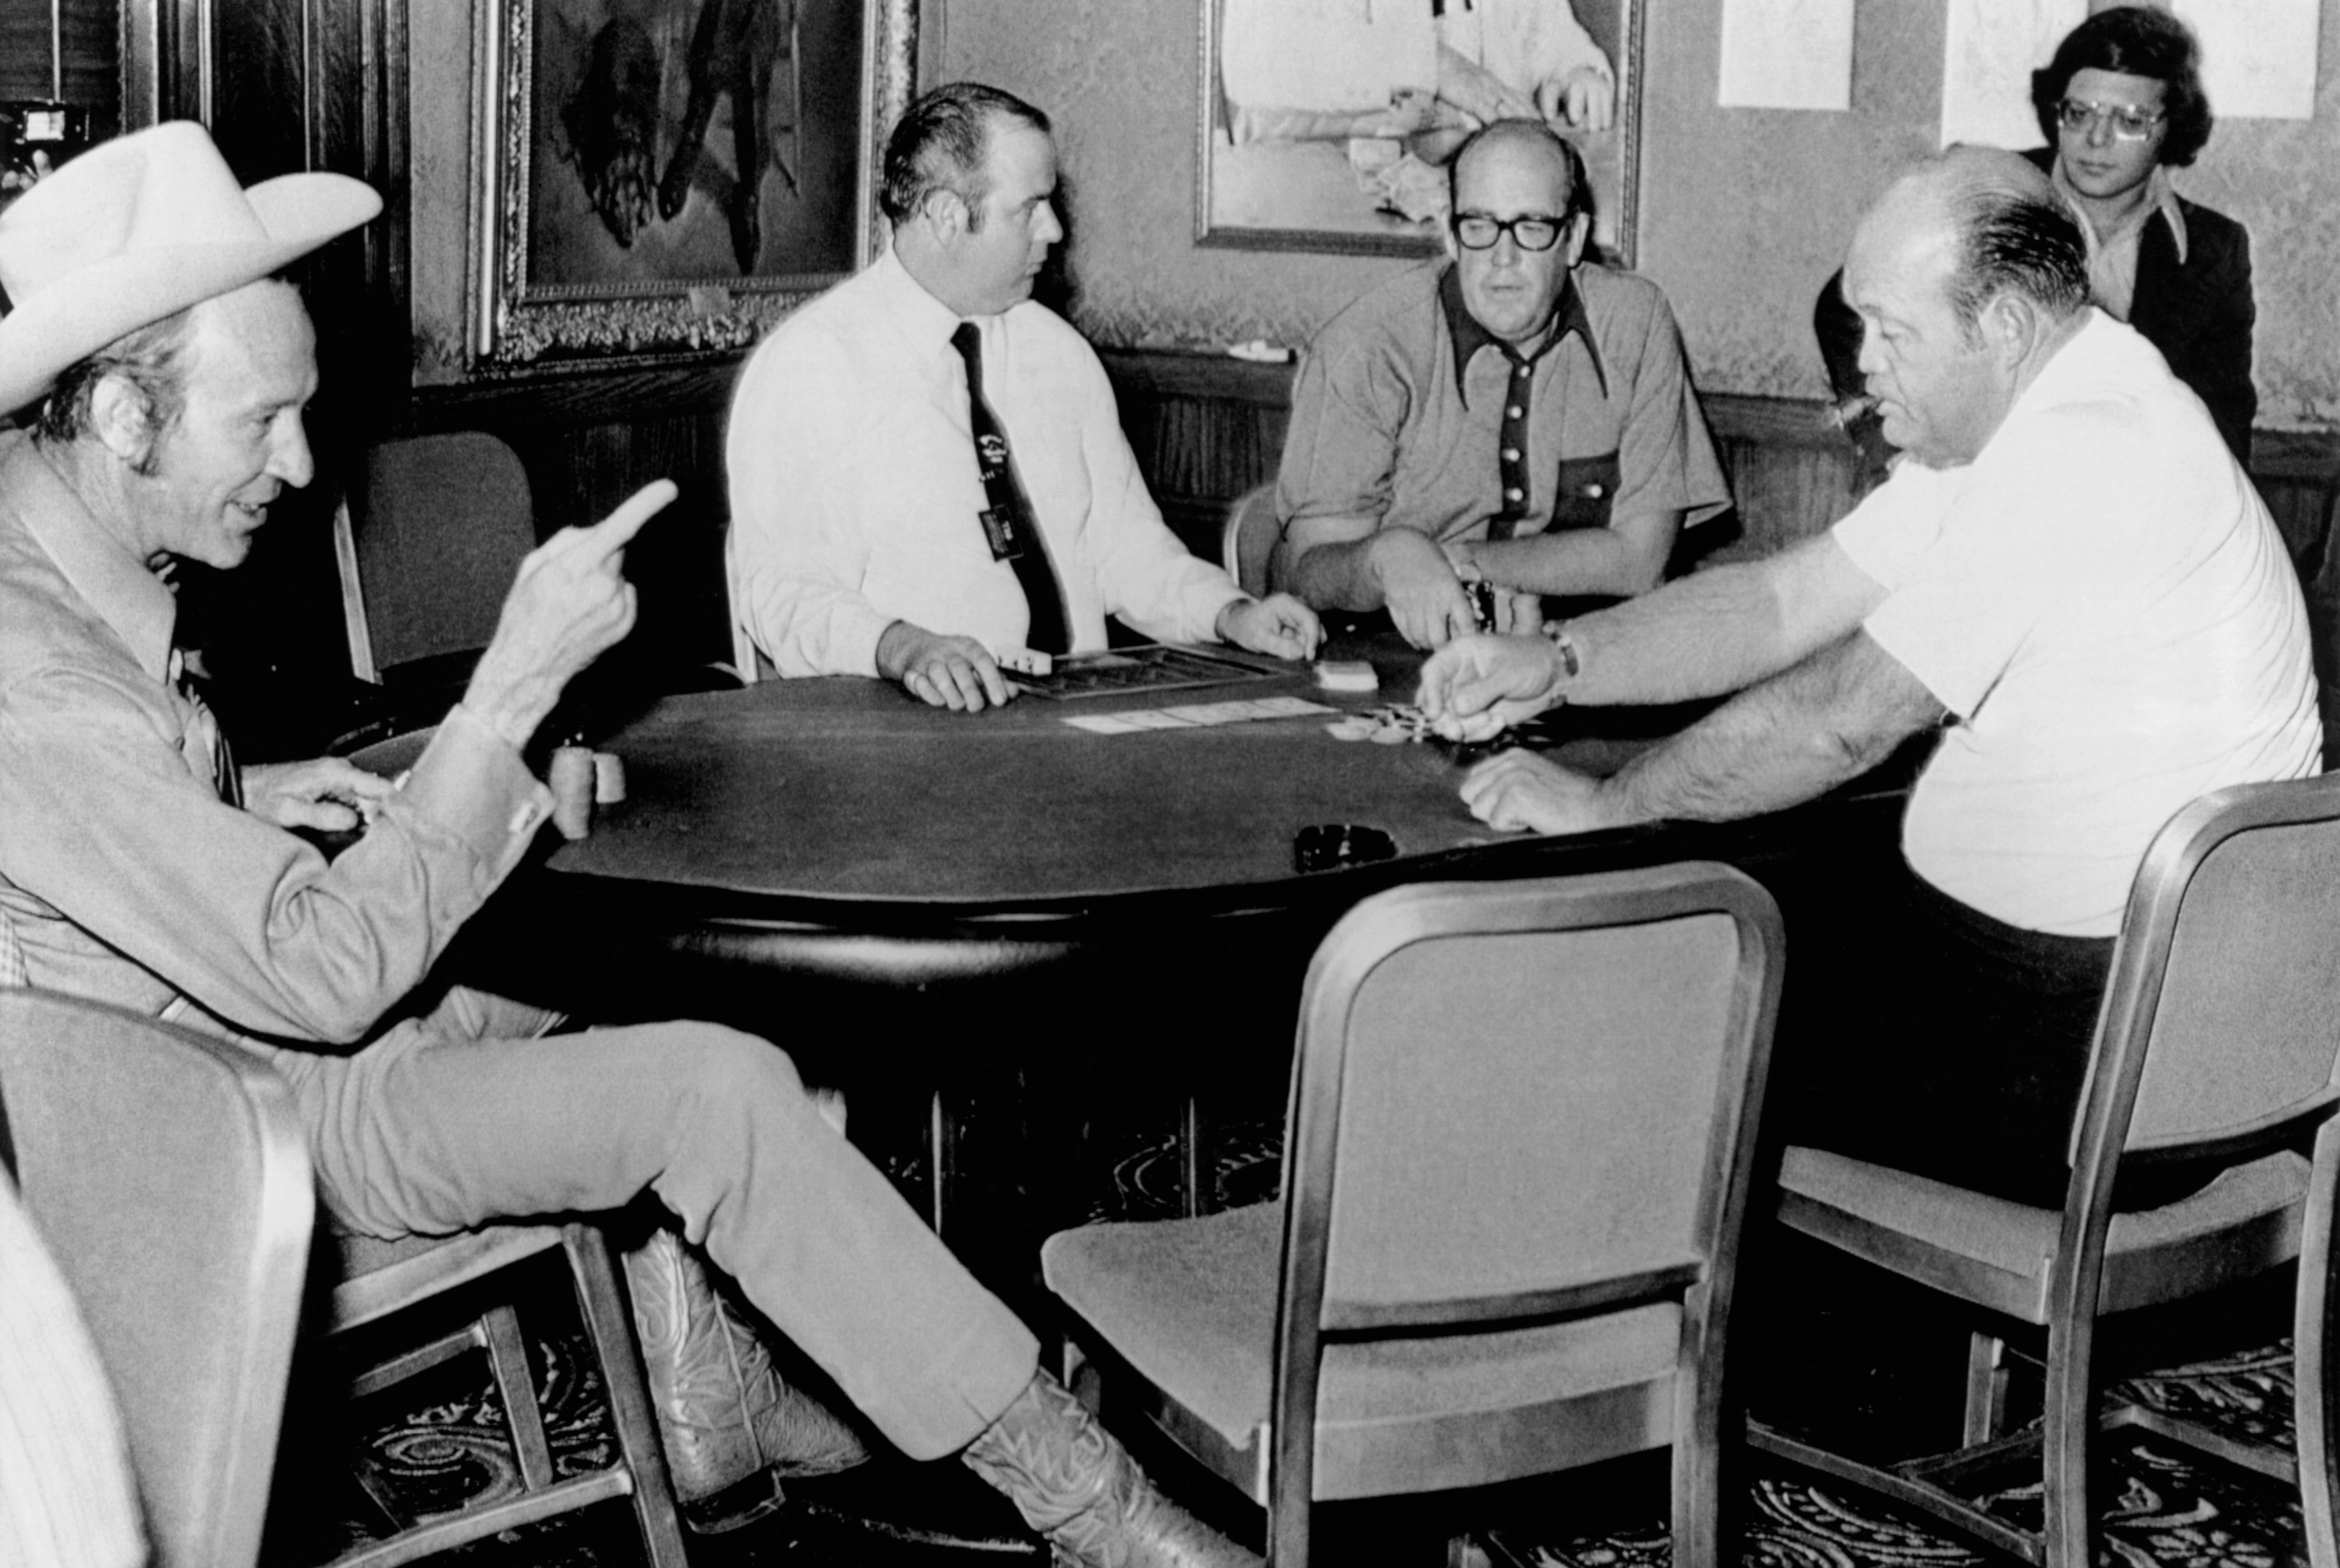 May 18 1972: Amarillo Slim, Puggy Pearson, and Doyle Brunson three handed for the WSOP Main Event title. (Image: Getty Images)